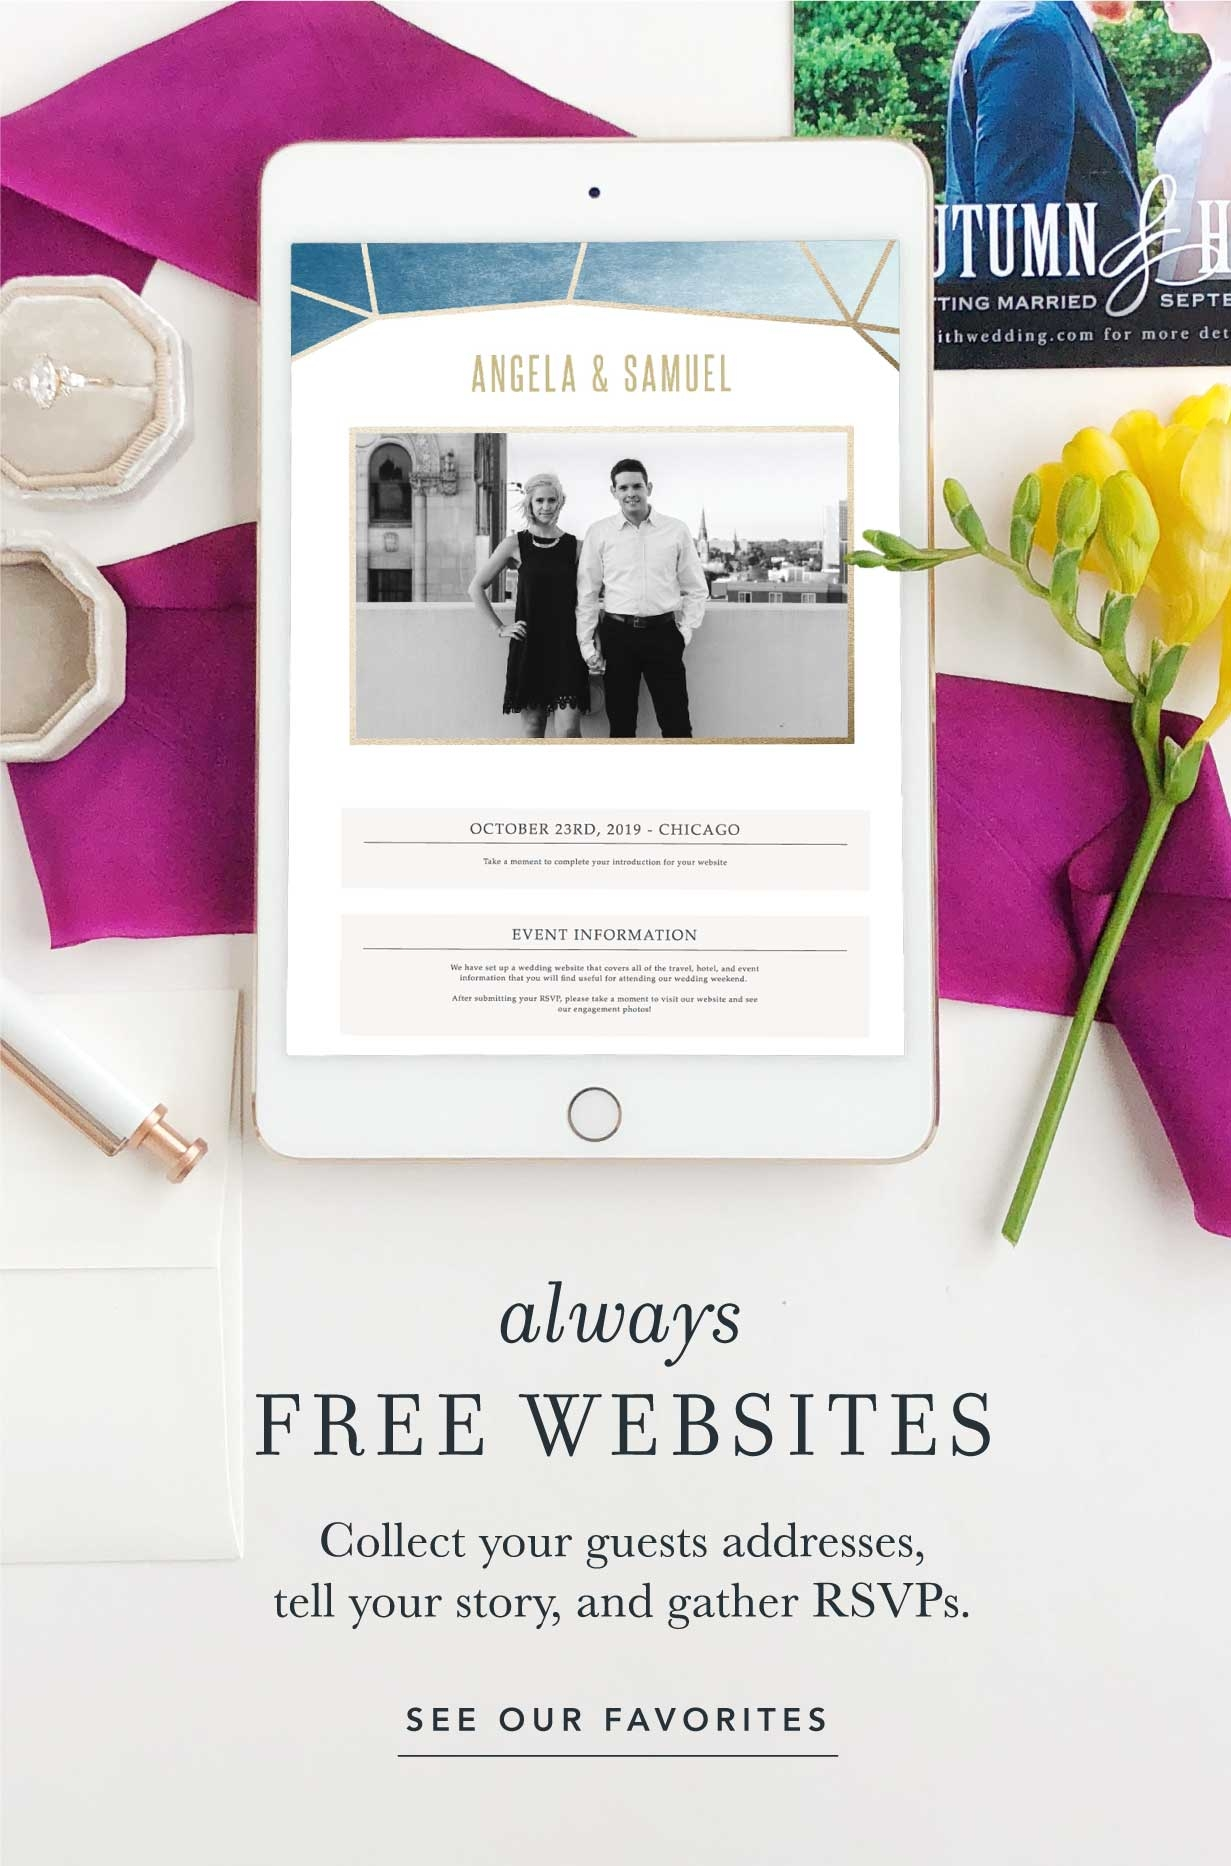 Always Free Websites Collect Your Guests Addresses Tell Story And Gather RSVPs